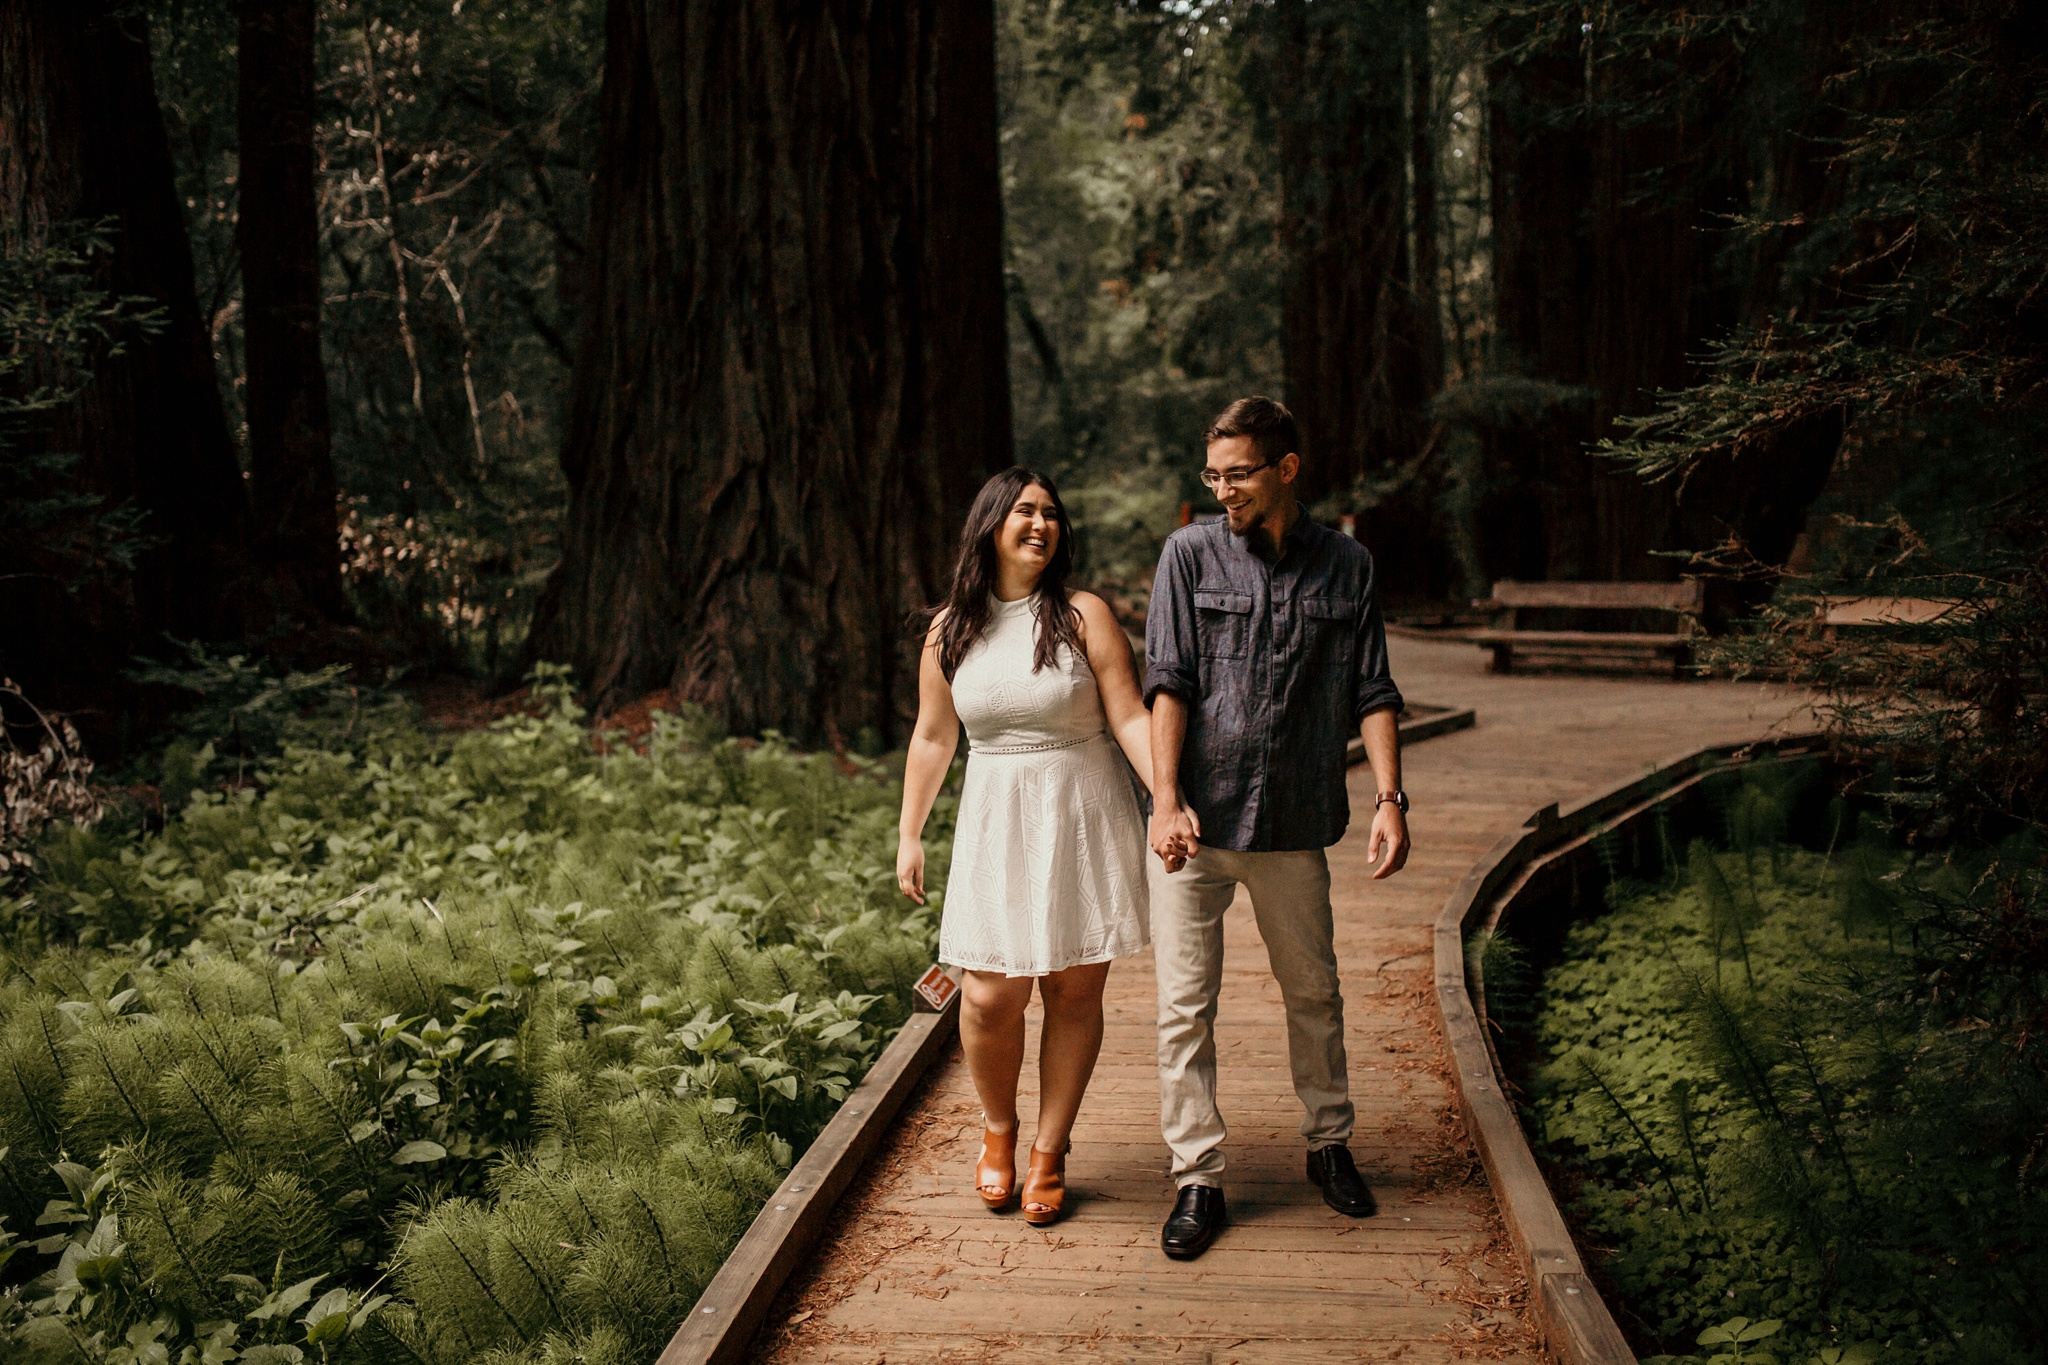 180503_engagement_bianca_muir_woods_mill_valley_danielle_alysse_photography_bay_area_photographer_blog_78_WEB.jpg